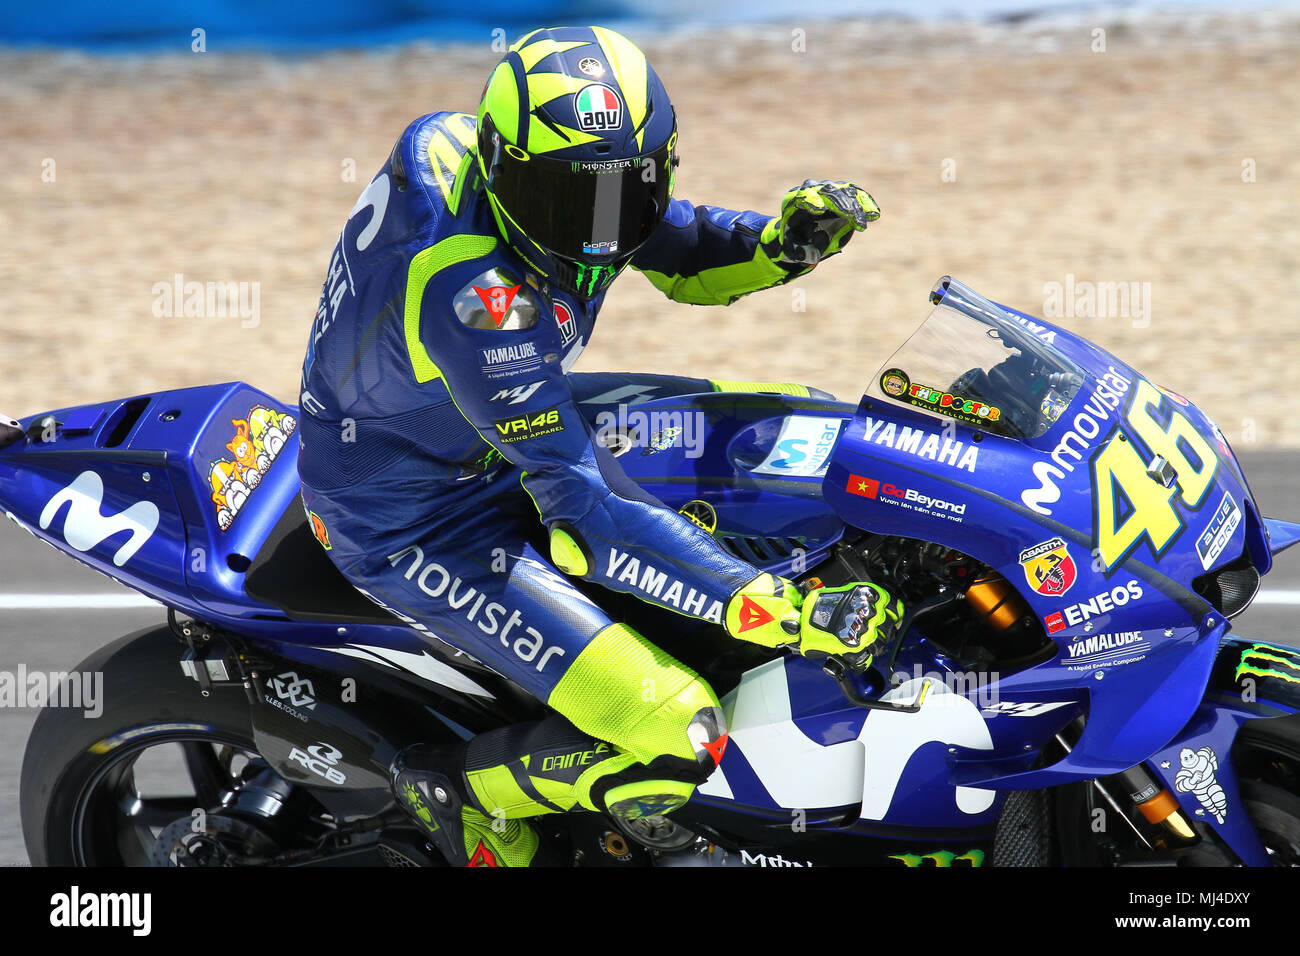 Valentino Rossi Honda Stock Photos & Valentino Rossi Honda Stock Images - Alamy